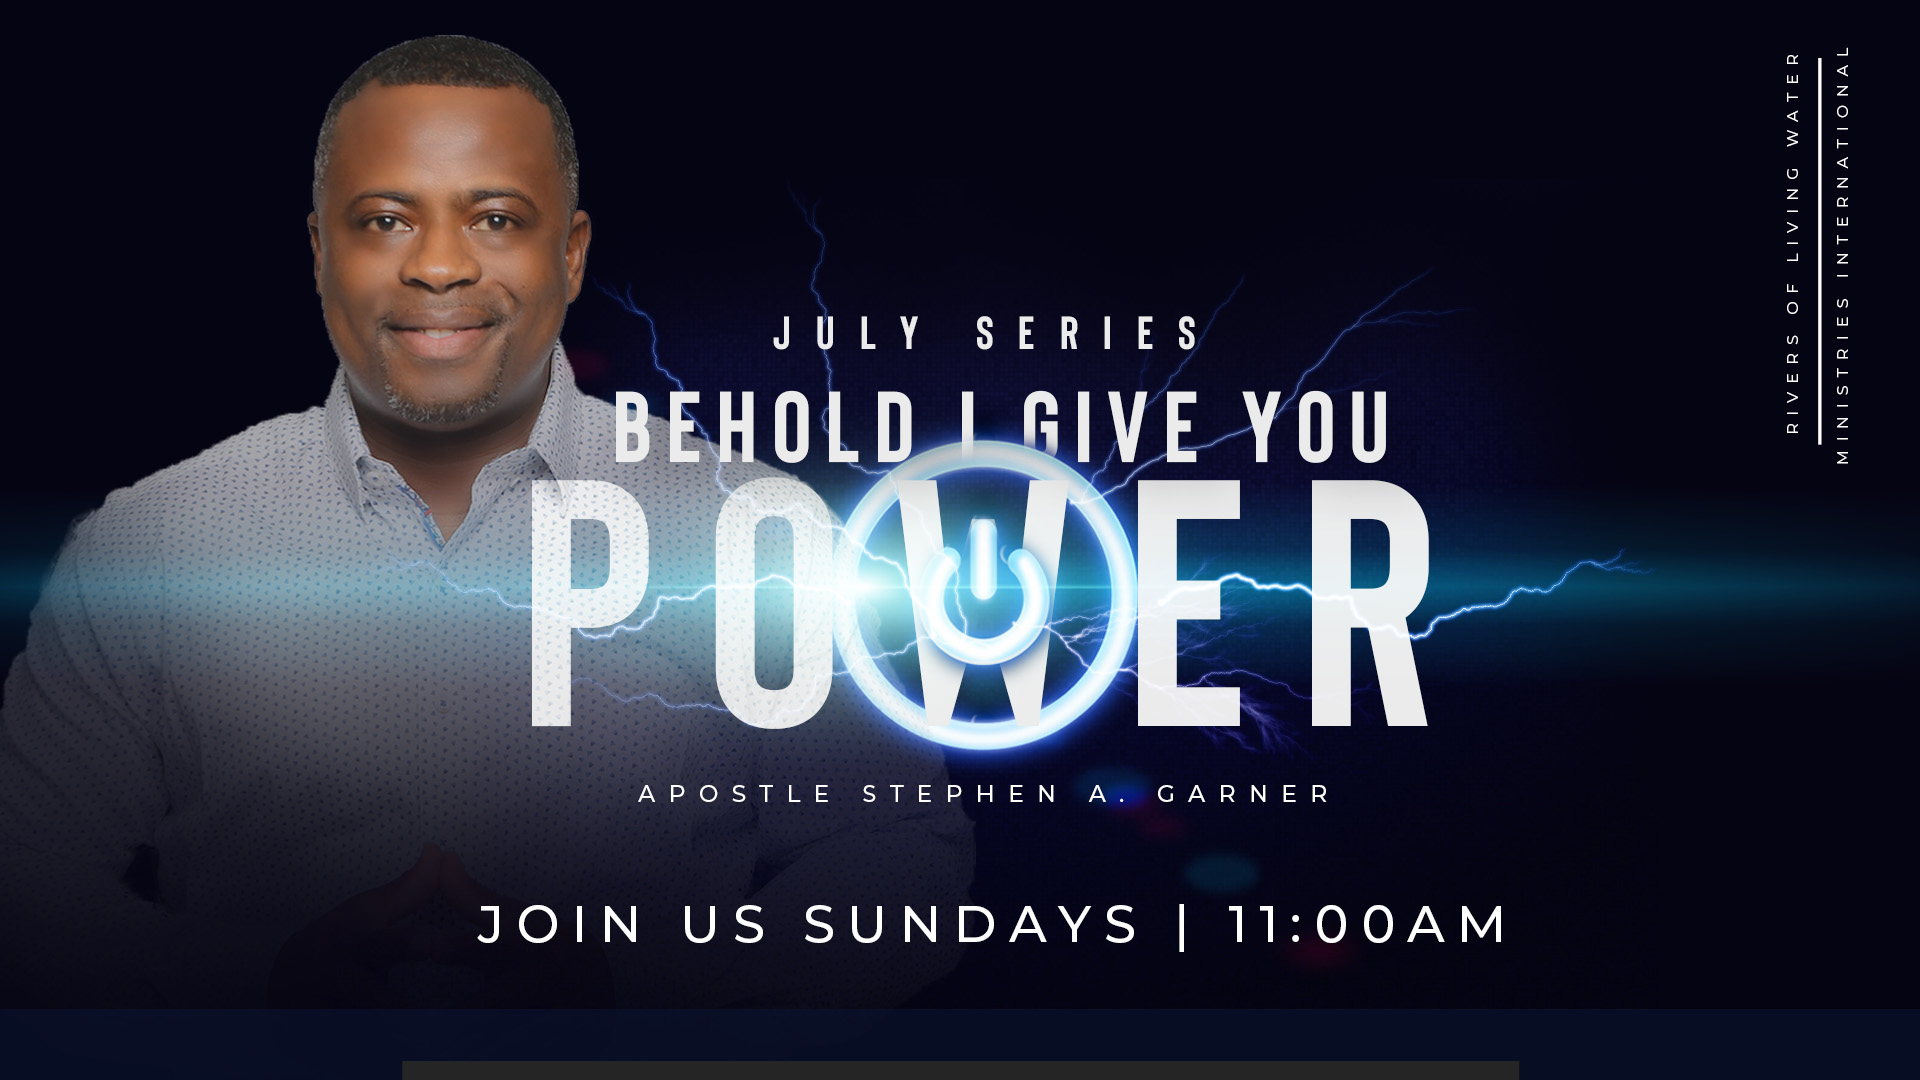 Join us in person or tune in to our live stream every Sunday in July 2k19 for the POWER sermon series!